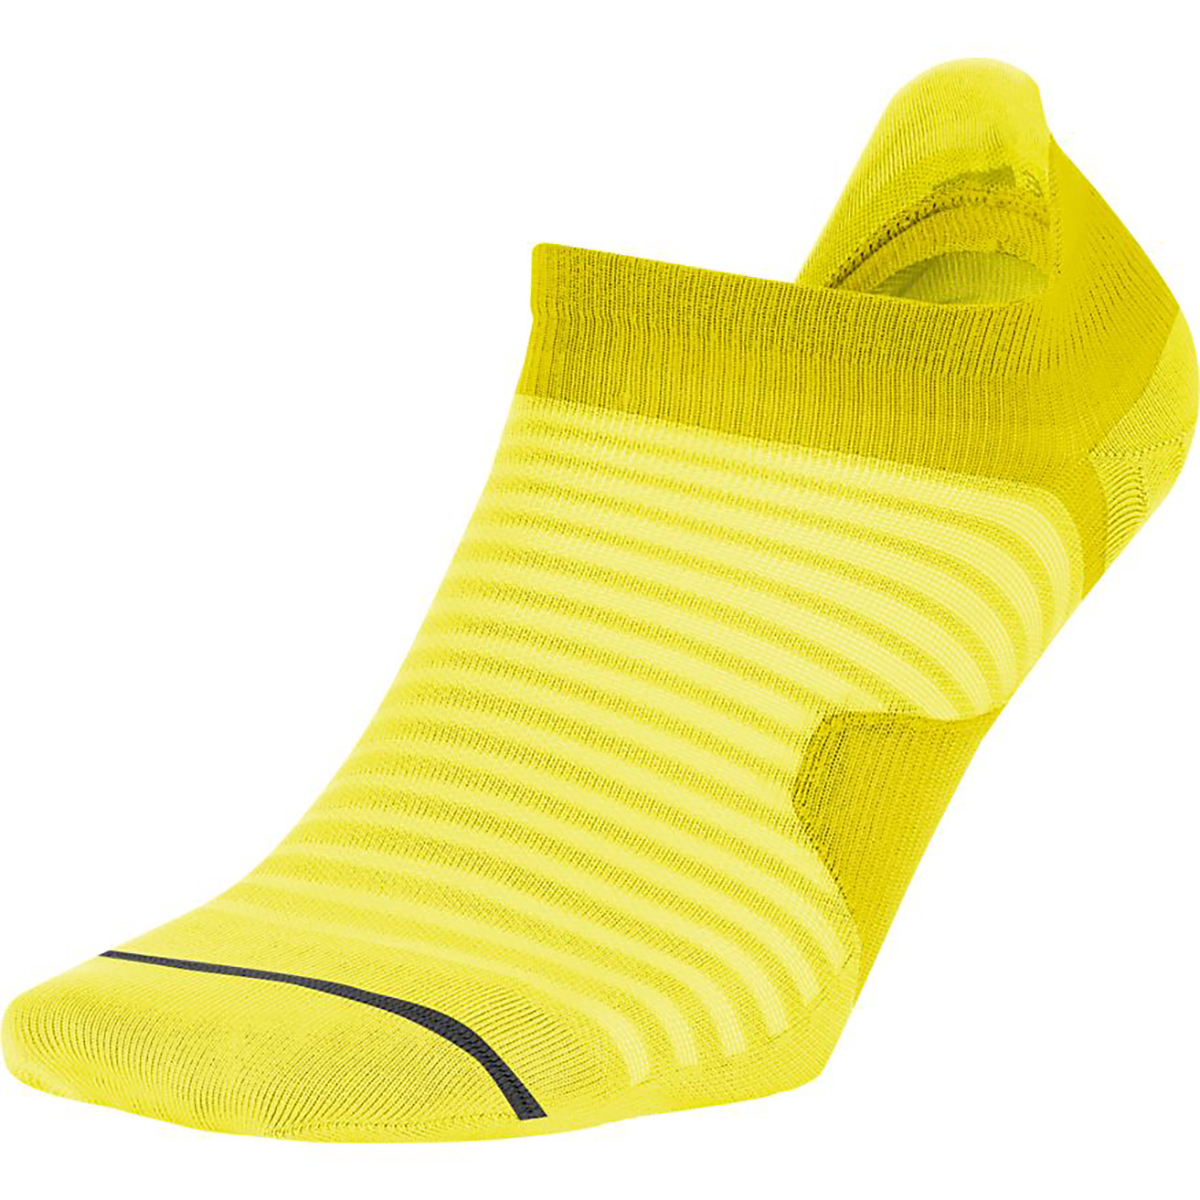 Nike Spark Lightweight No-Show Running Socks - Color: Neon Yellow - Size: 4/5.5, Neon Yellow, large, image 1